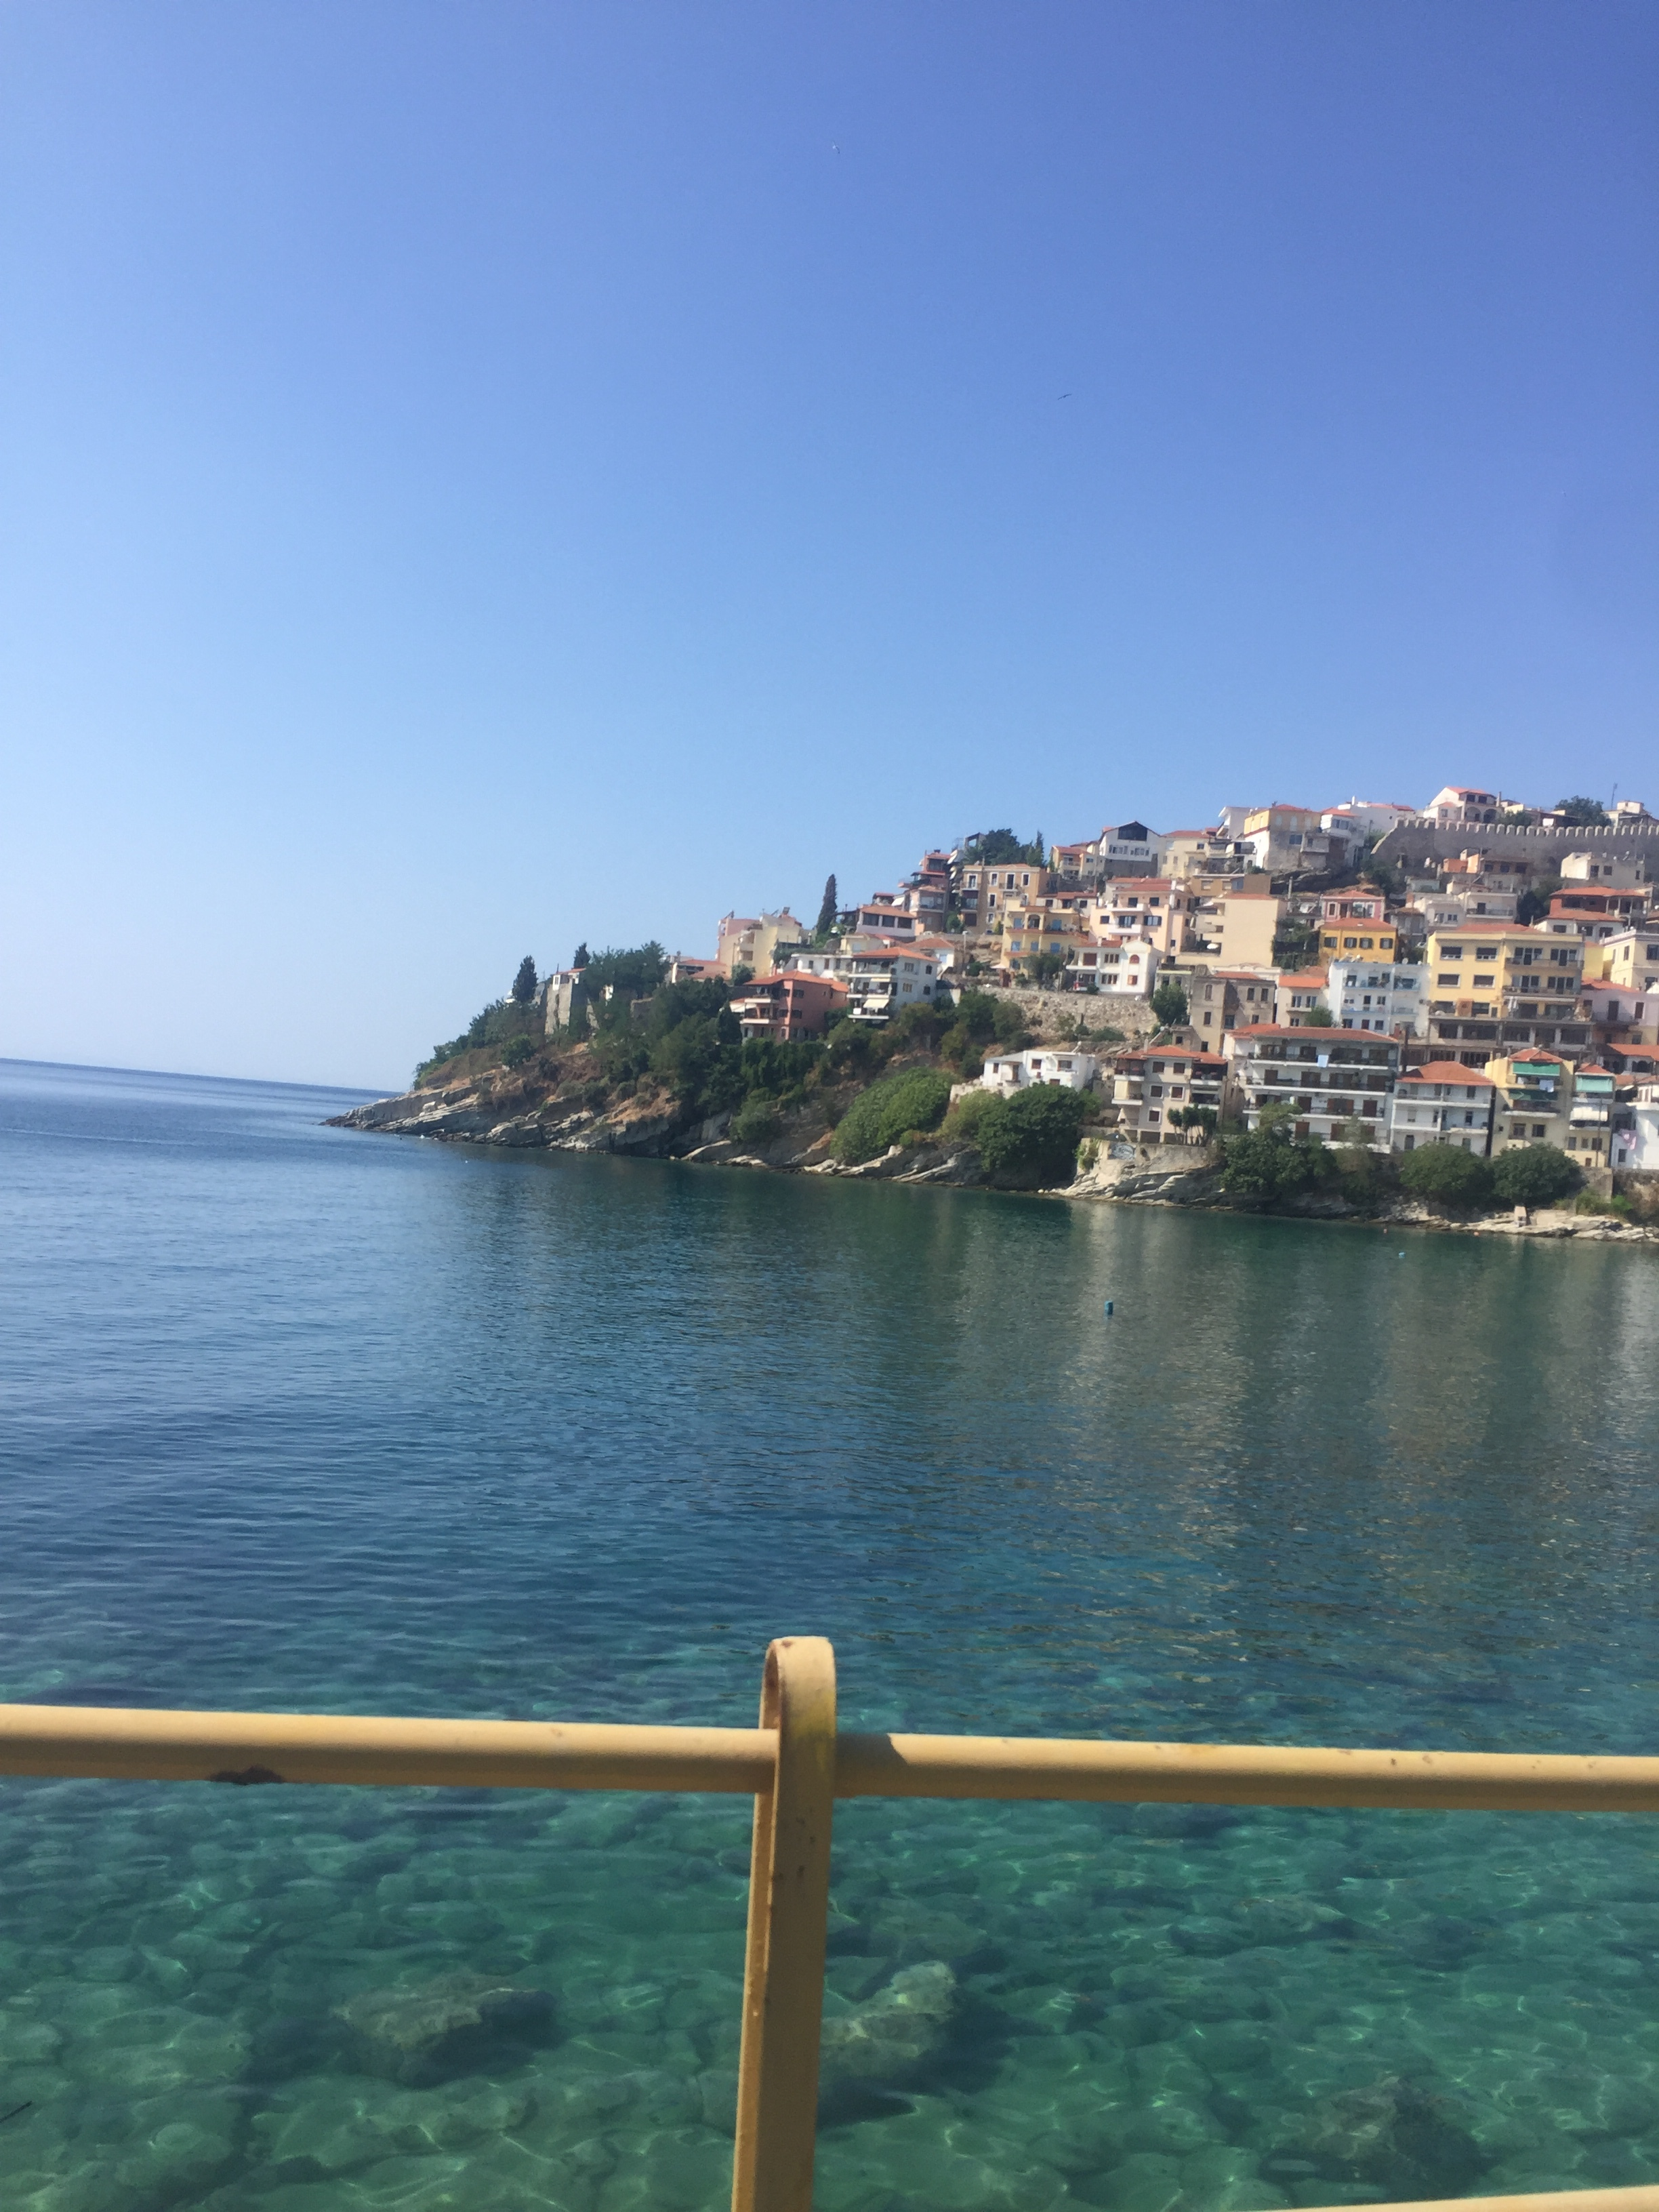 Kavala - after cycling through much of the night